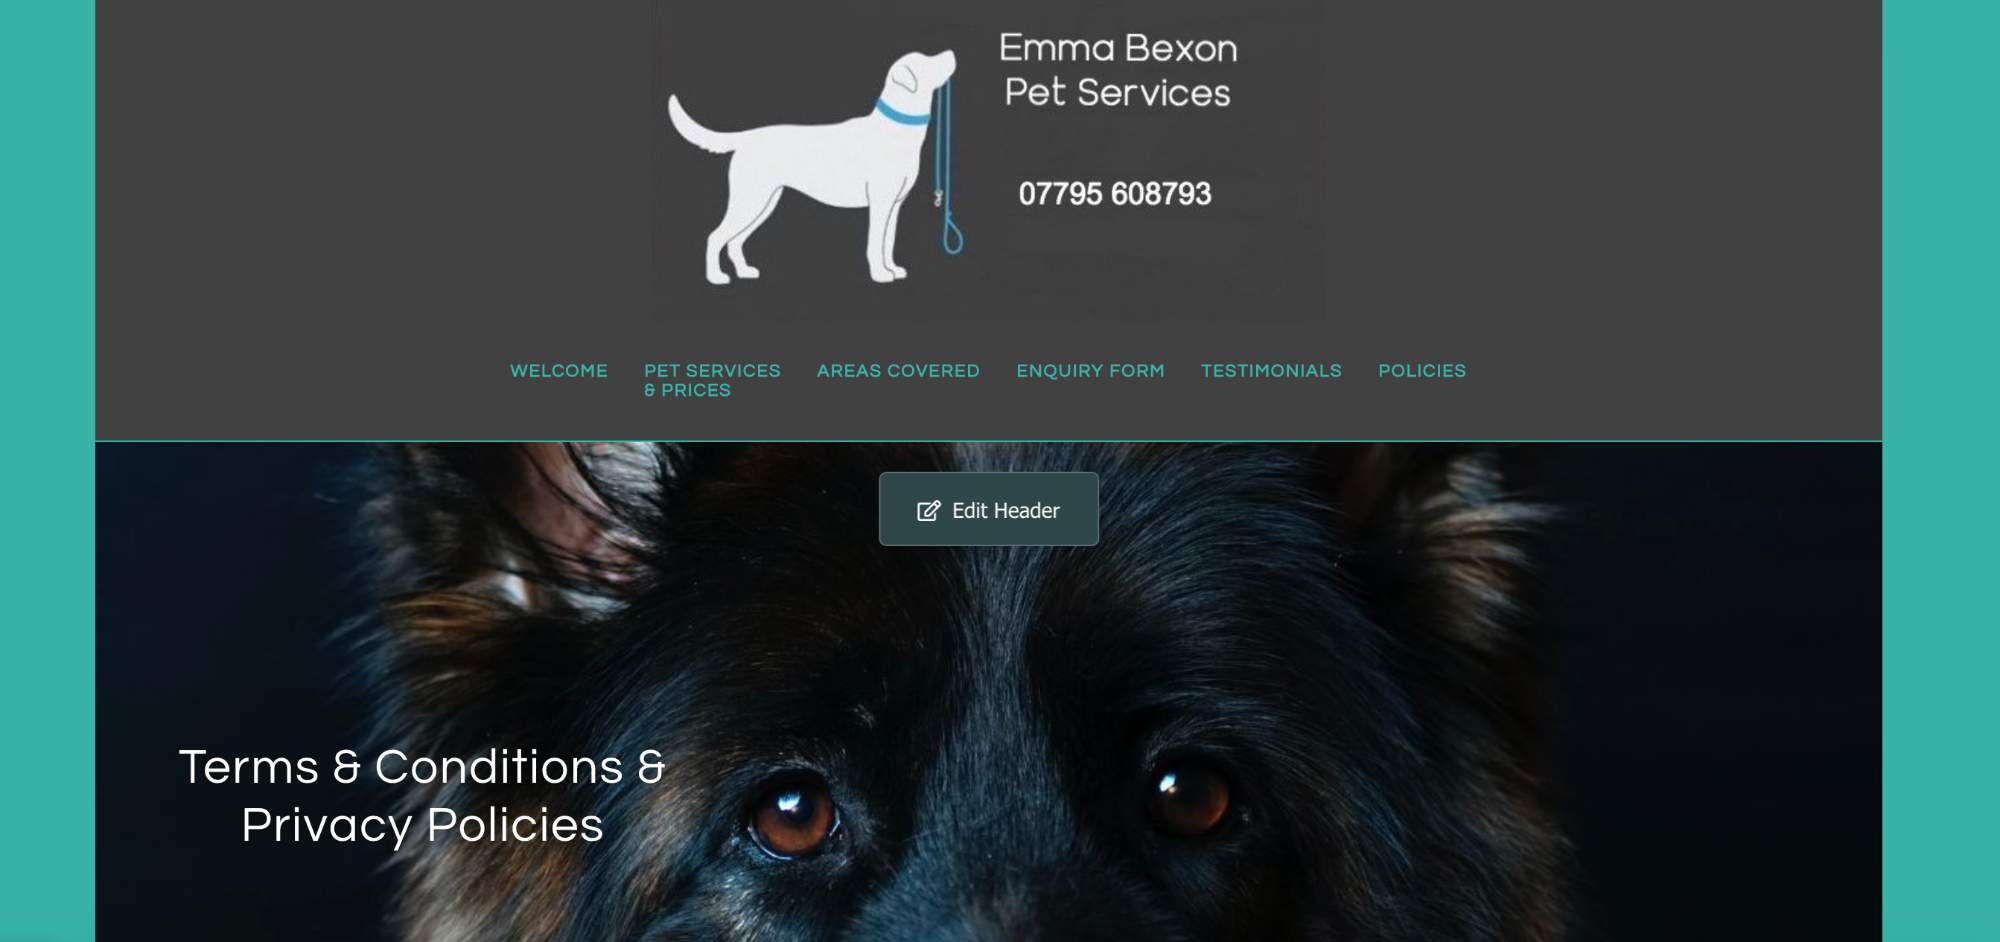 Emma Bexon Pet Services